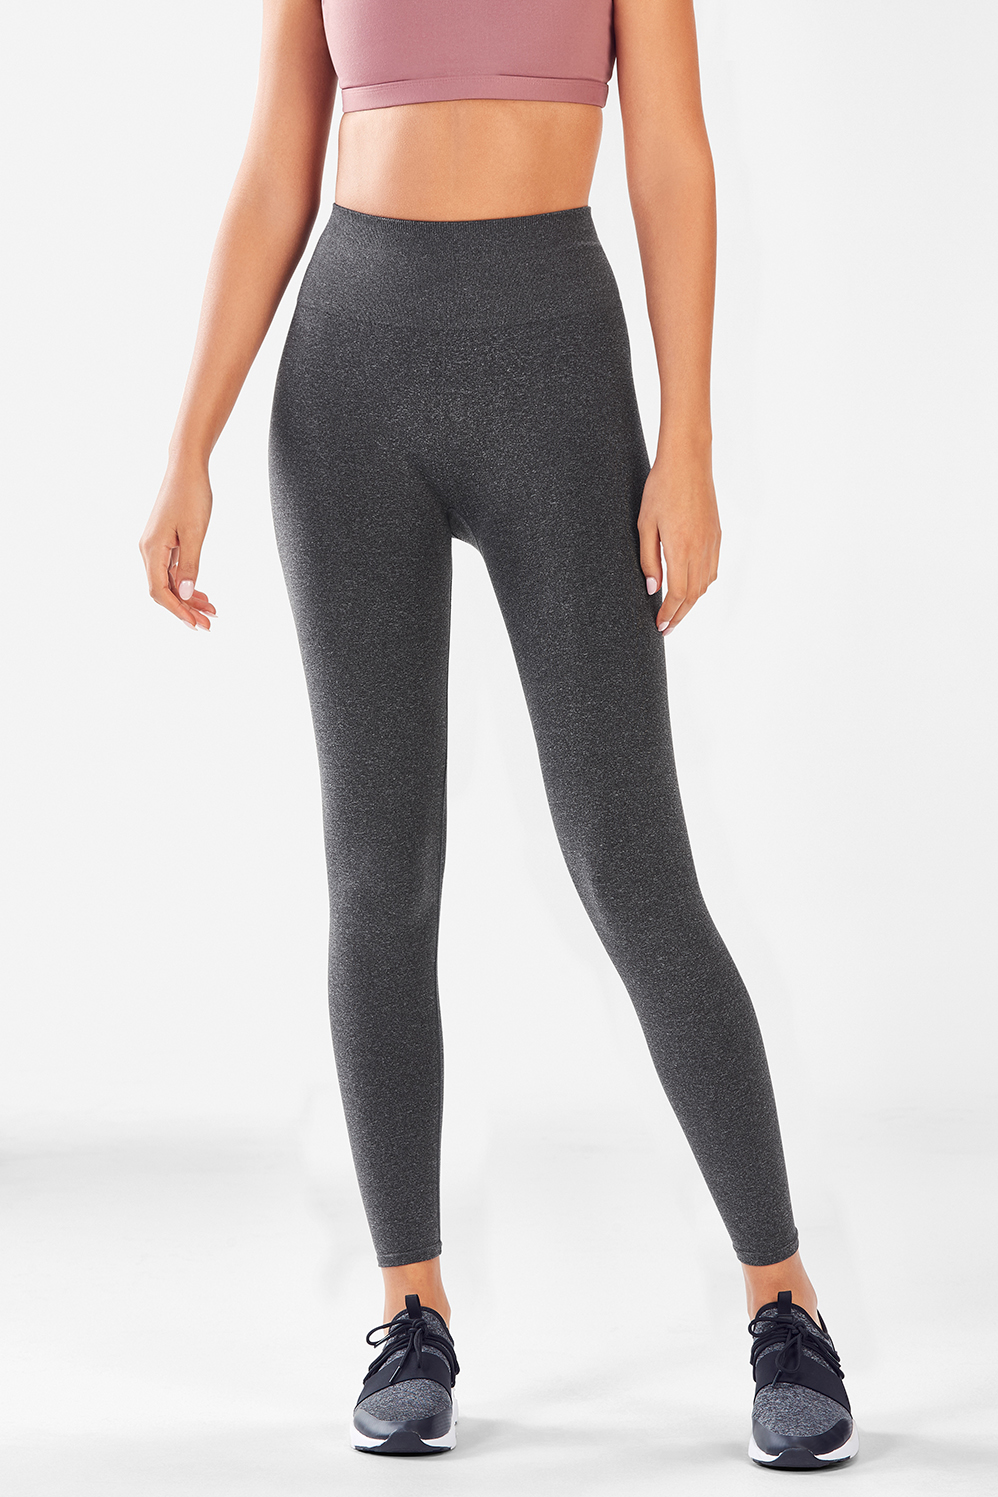 9f36099a8e6a28 Seamless High-Waisted Solid Legging - Charcoal Heather